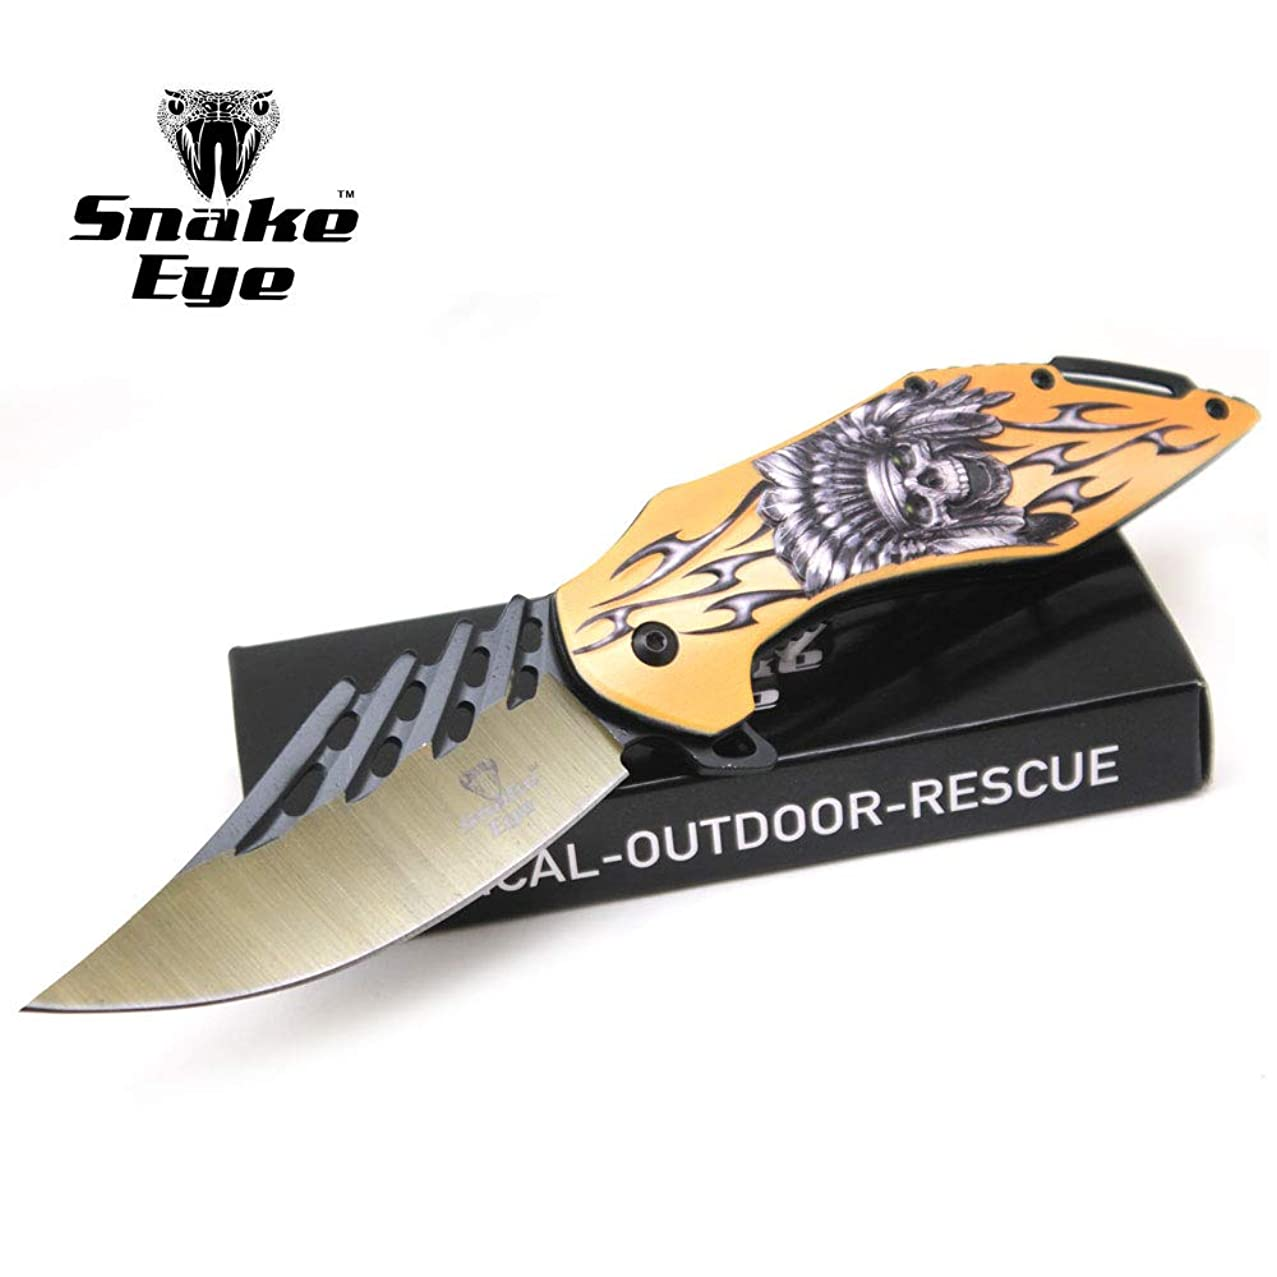 Snake Eye Tactical Every Day Carry Fantasy Skull Design Folding Knife | Outdoor Survival Pocket Knife | Small one-Hand Knife Made of Stainless Steel Blade